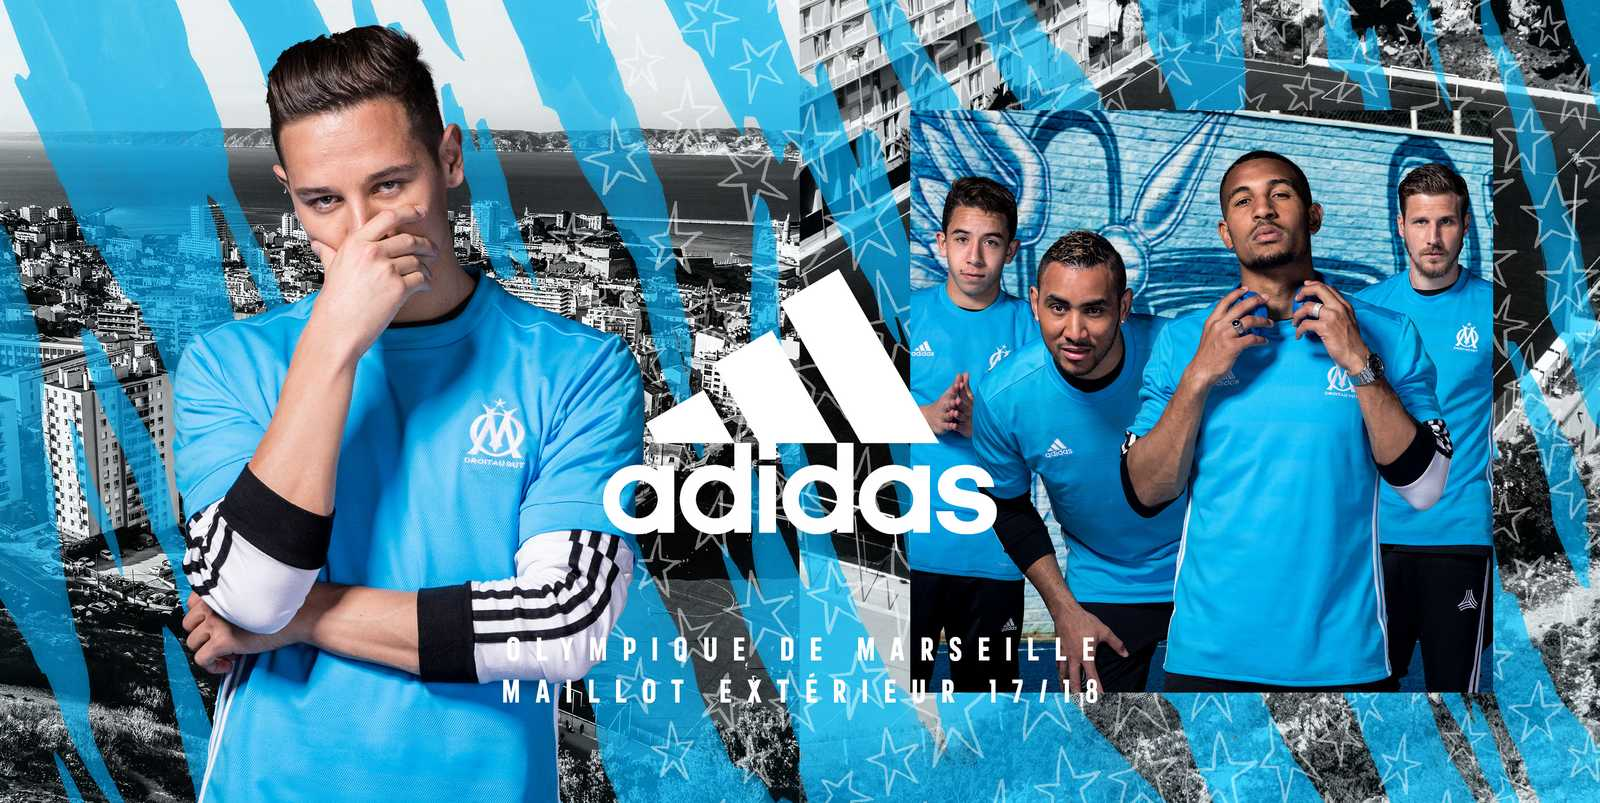 Olympique marseille 17 18 away kit released footy headlines for Decoration chambre olympique de marseille